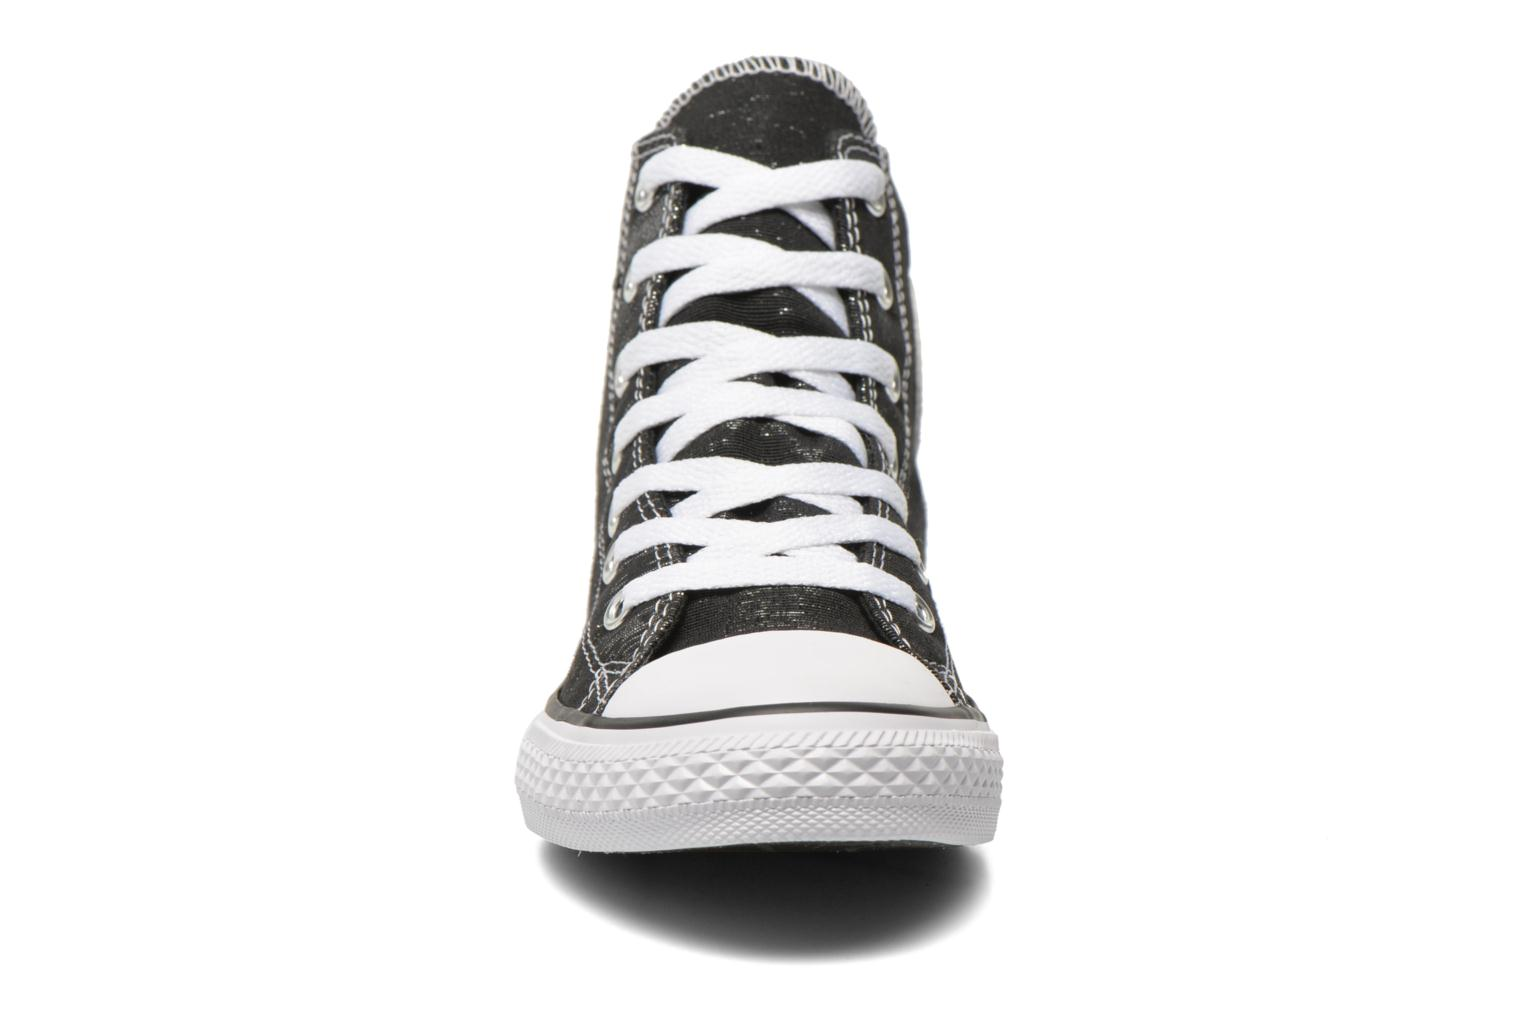 Chuck Taylor All Star Hi Black/white/black